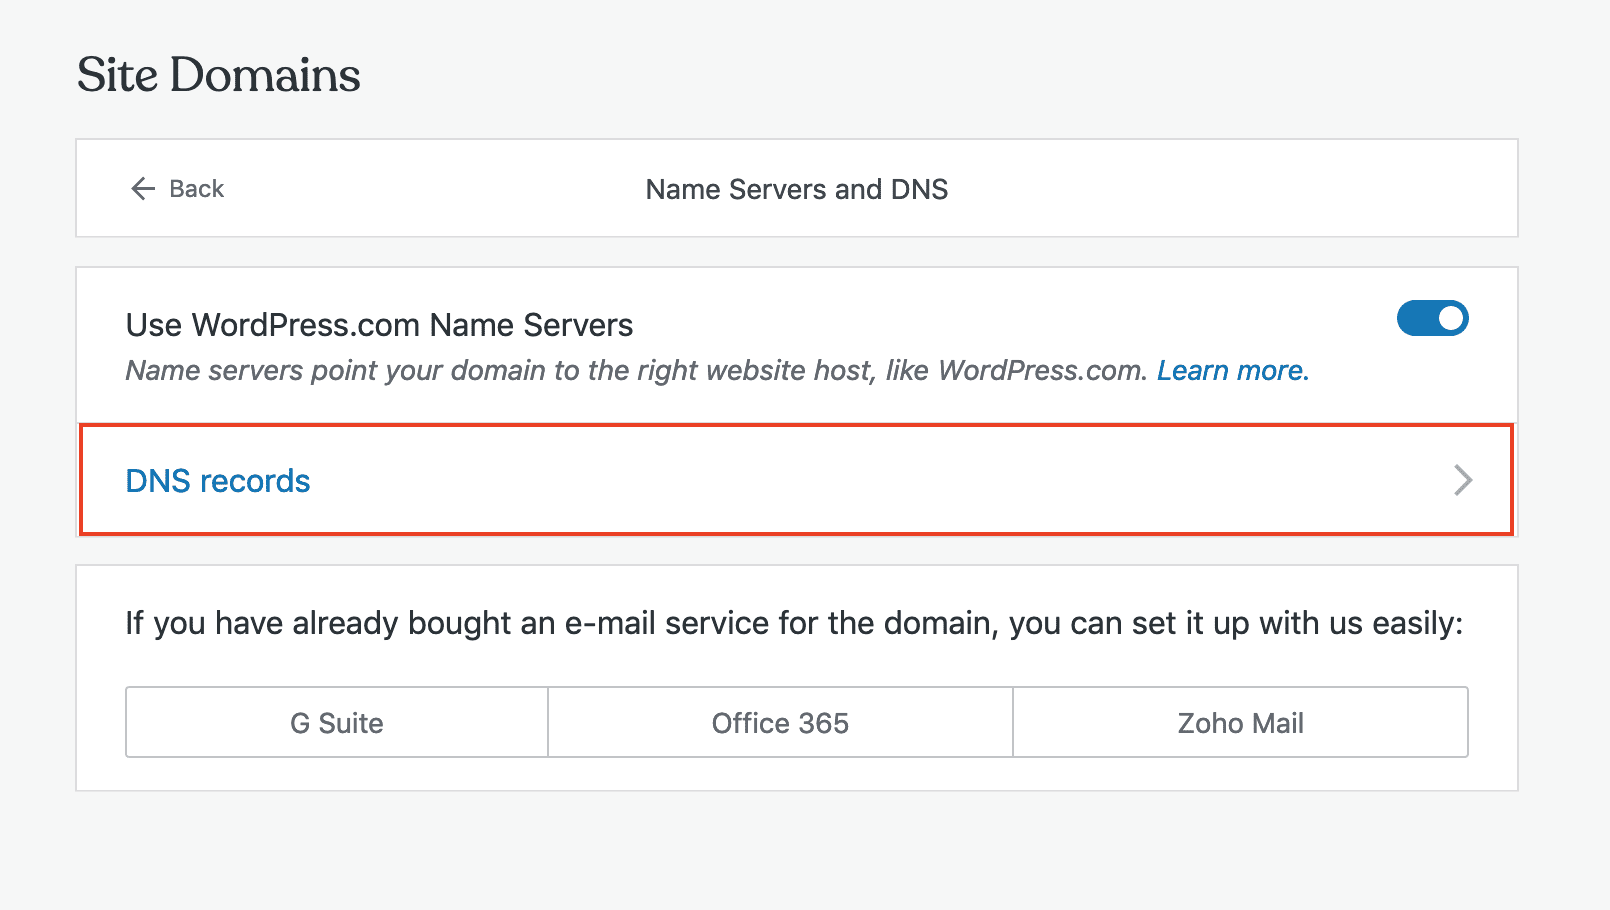 Name server and DNS settings in Pressable.